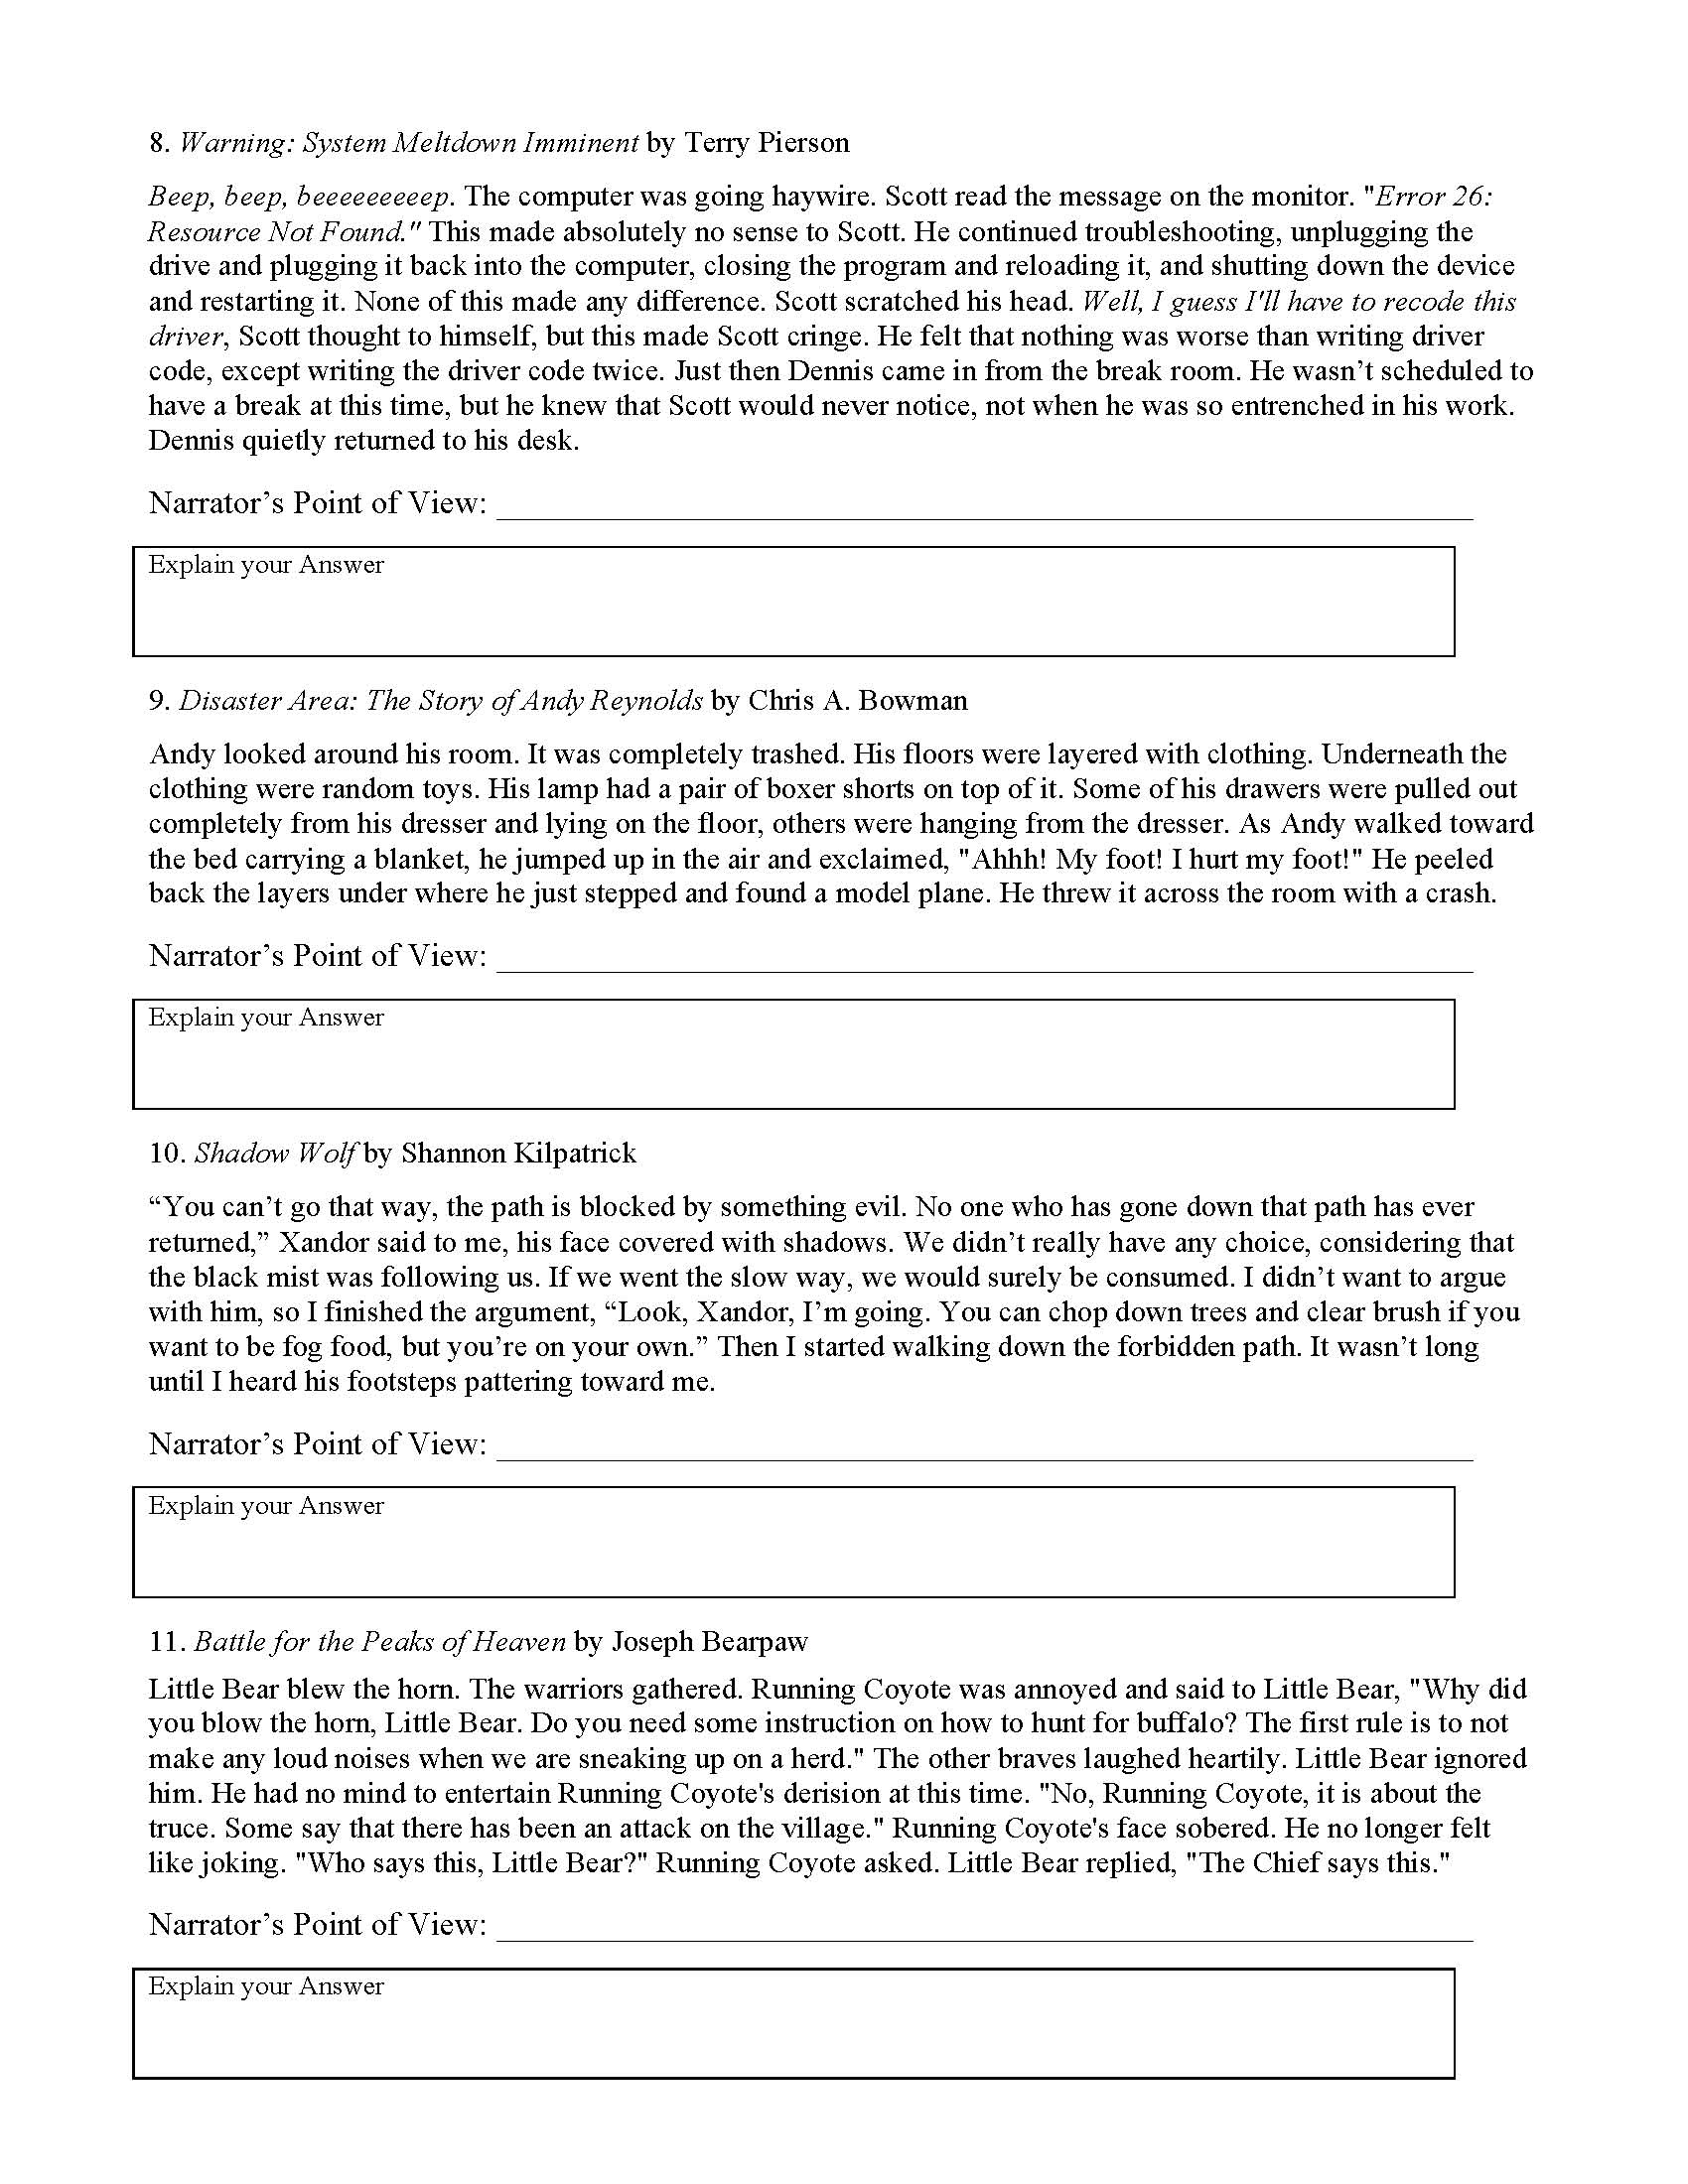 Point Of View Worksheet 3 : point, worksheet, Point, Worksheet, Preview